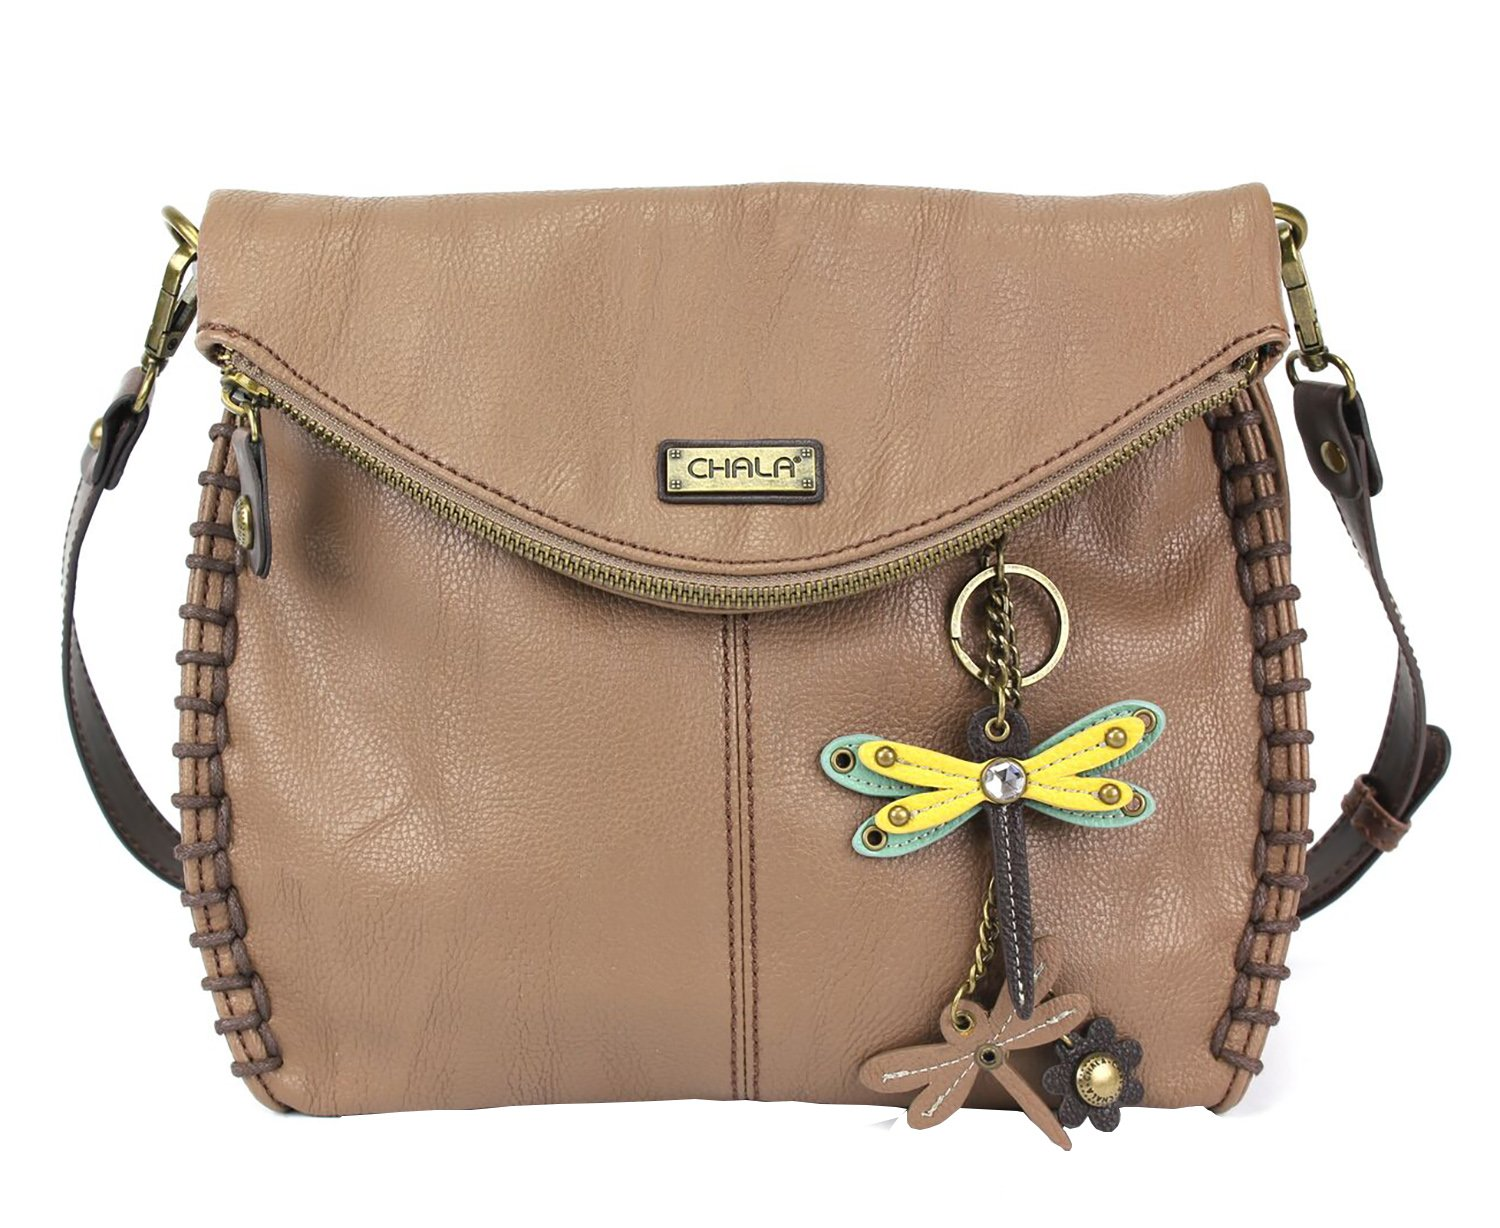 Chala Charming Crossbody Bag with Zipper Flap Top and Metal Chain - Light Brown - Mini Dragonfly